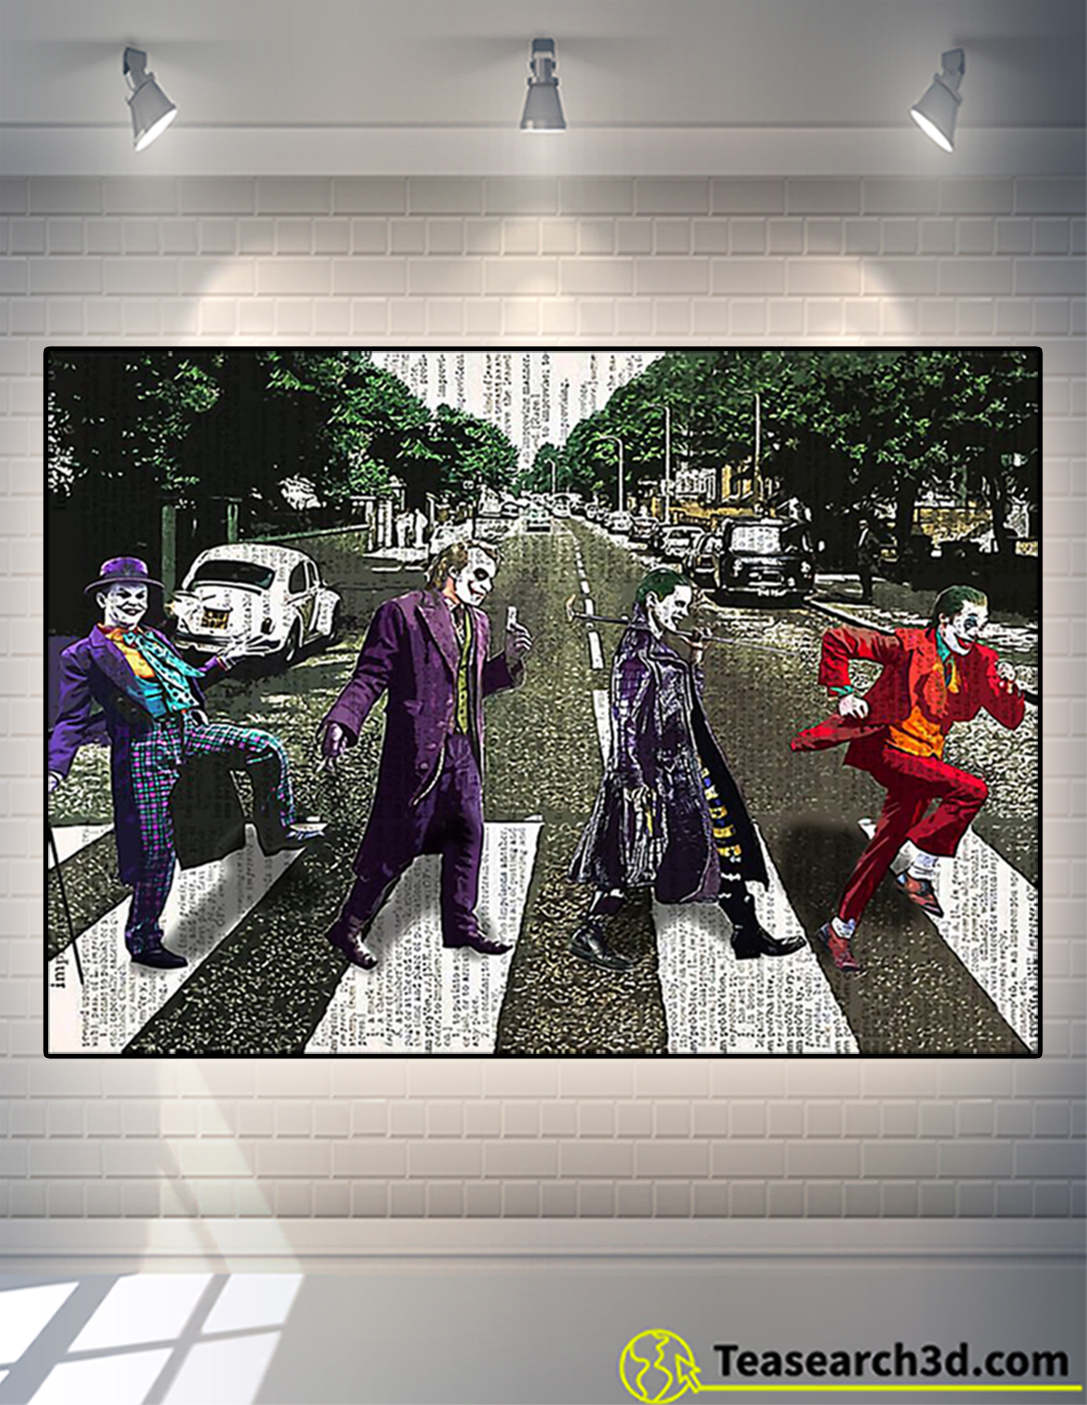 Jocker abbey road parody poster A2